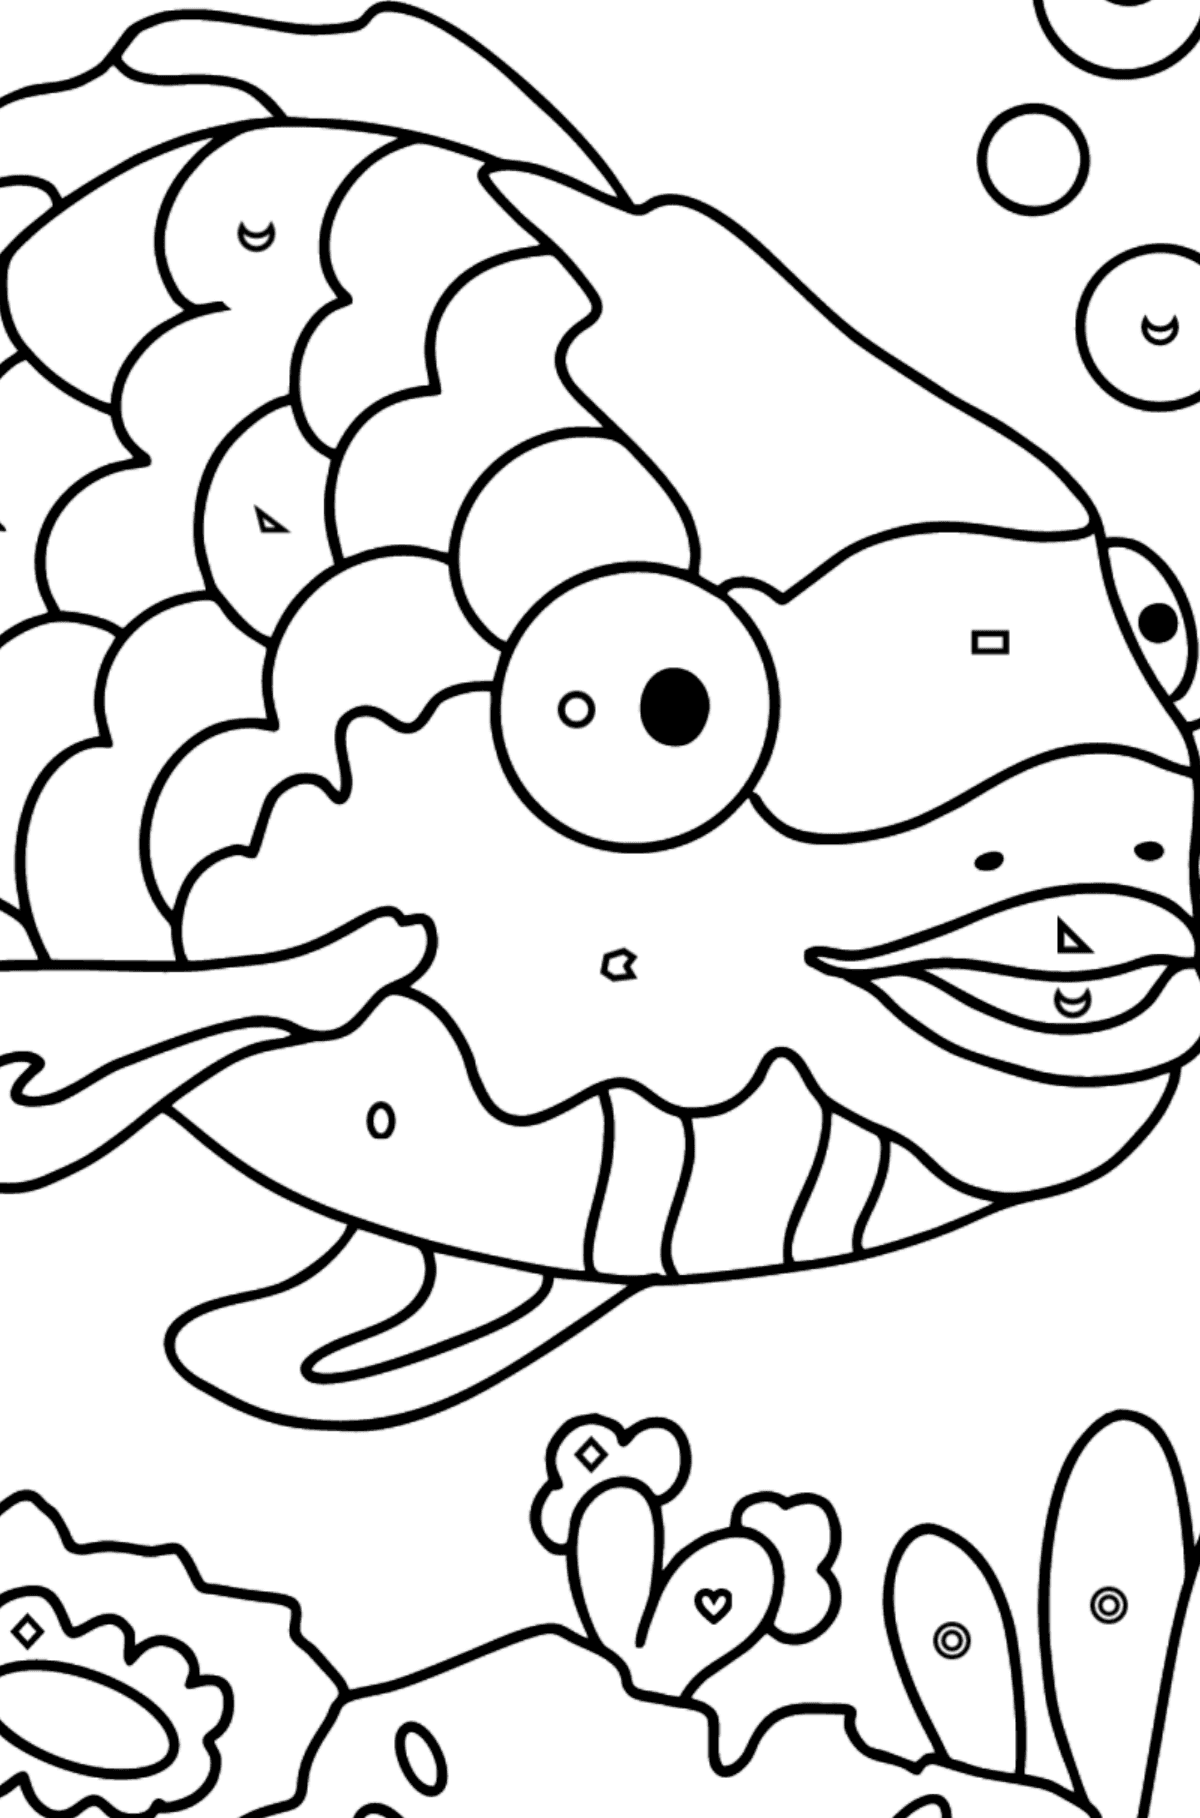 Coloring Page - A Fish with Beautiful Scales - Coloring by Geometric Shapes for Kids